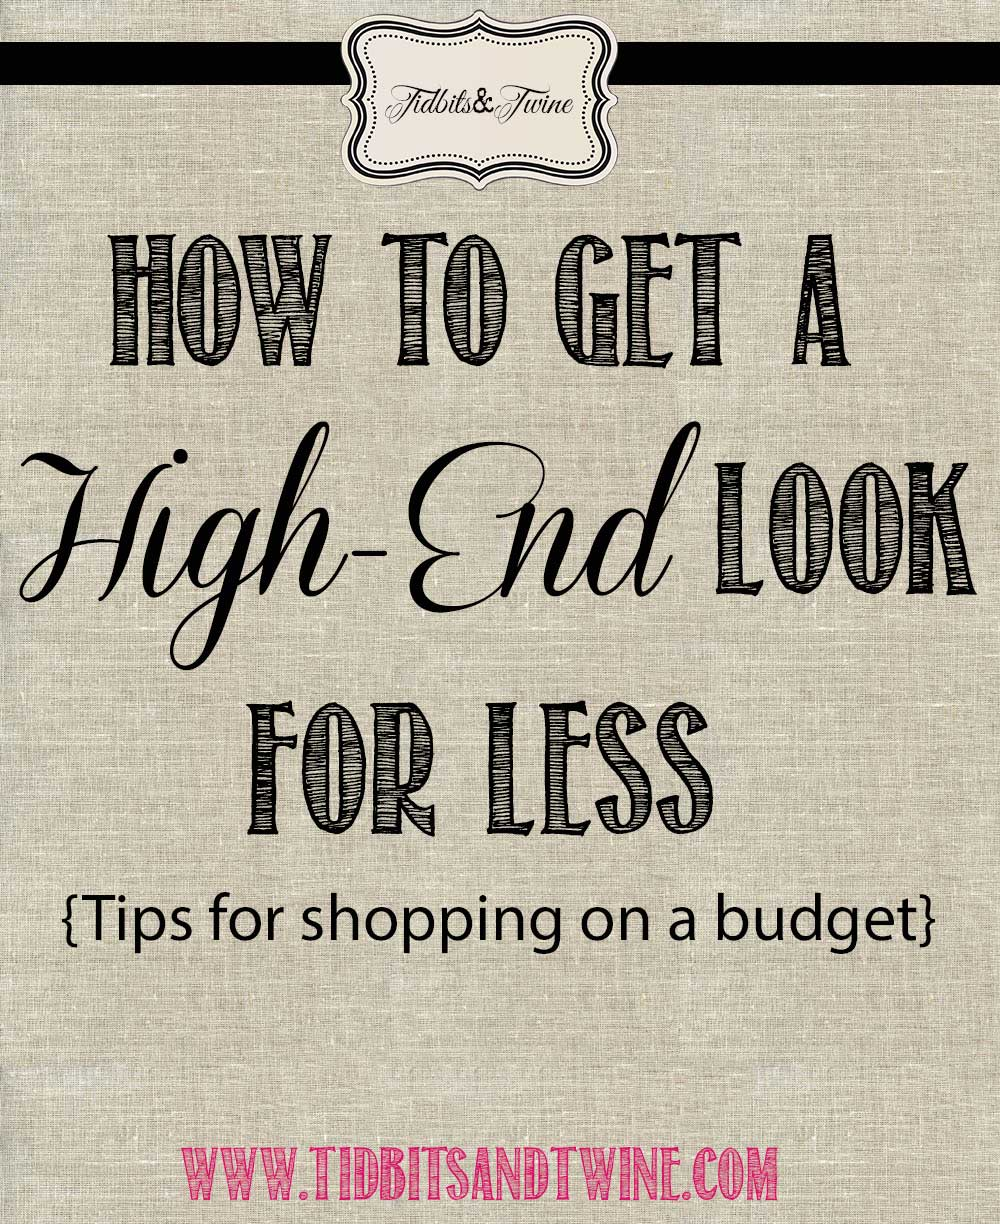 TIDBITS&TWINE - How to Get a High-End Look for Less